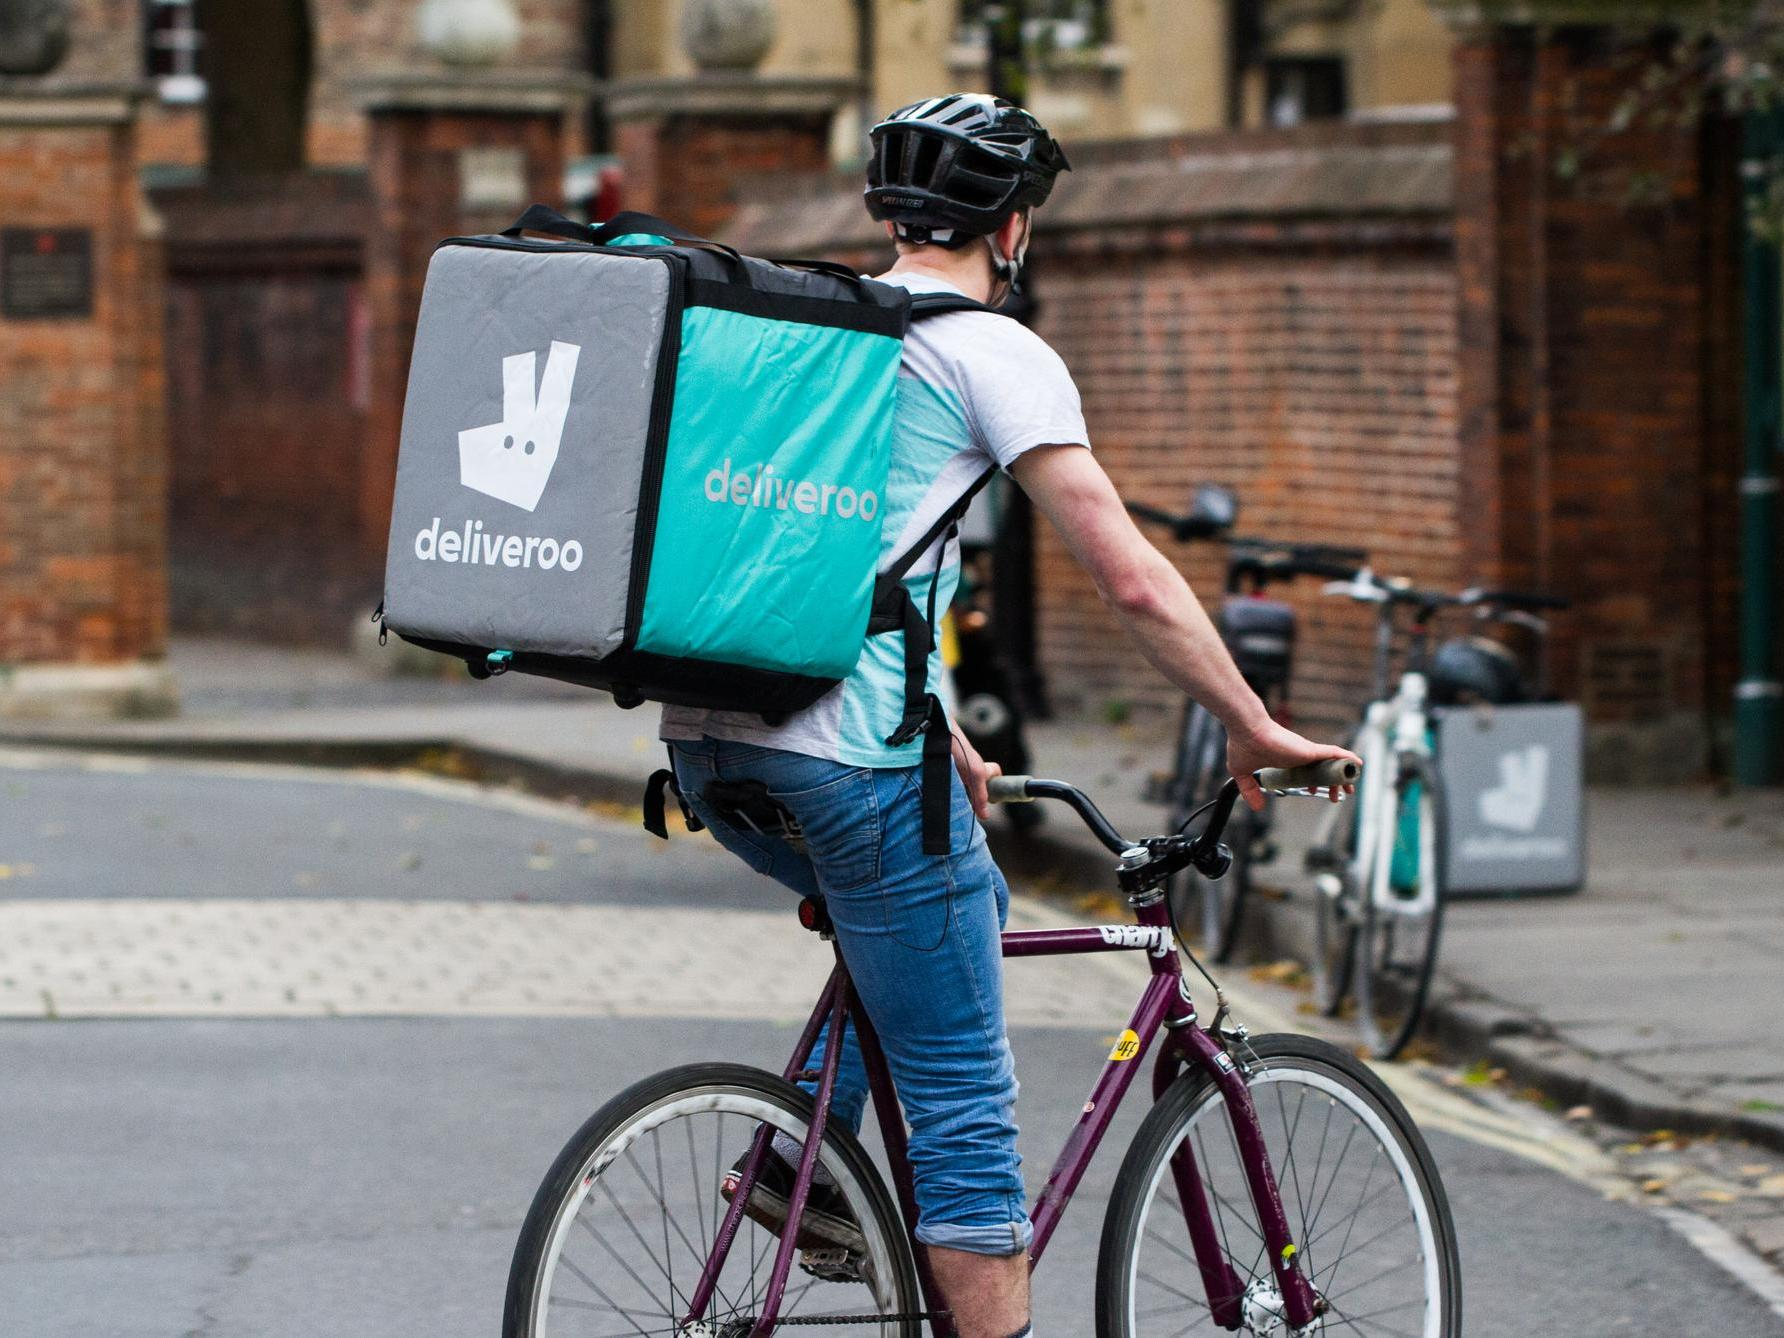 Deliveroo advert banned for being misleading 1